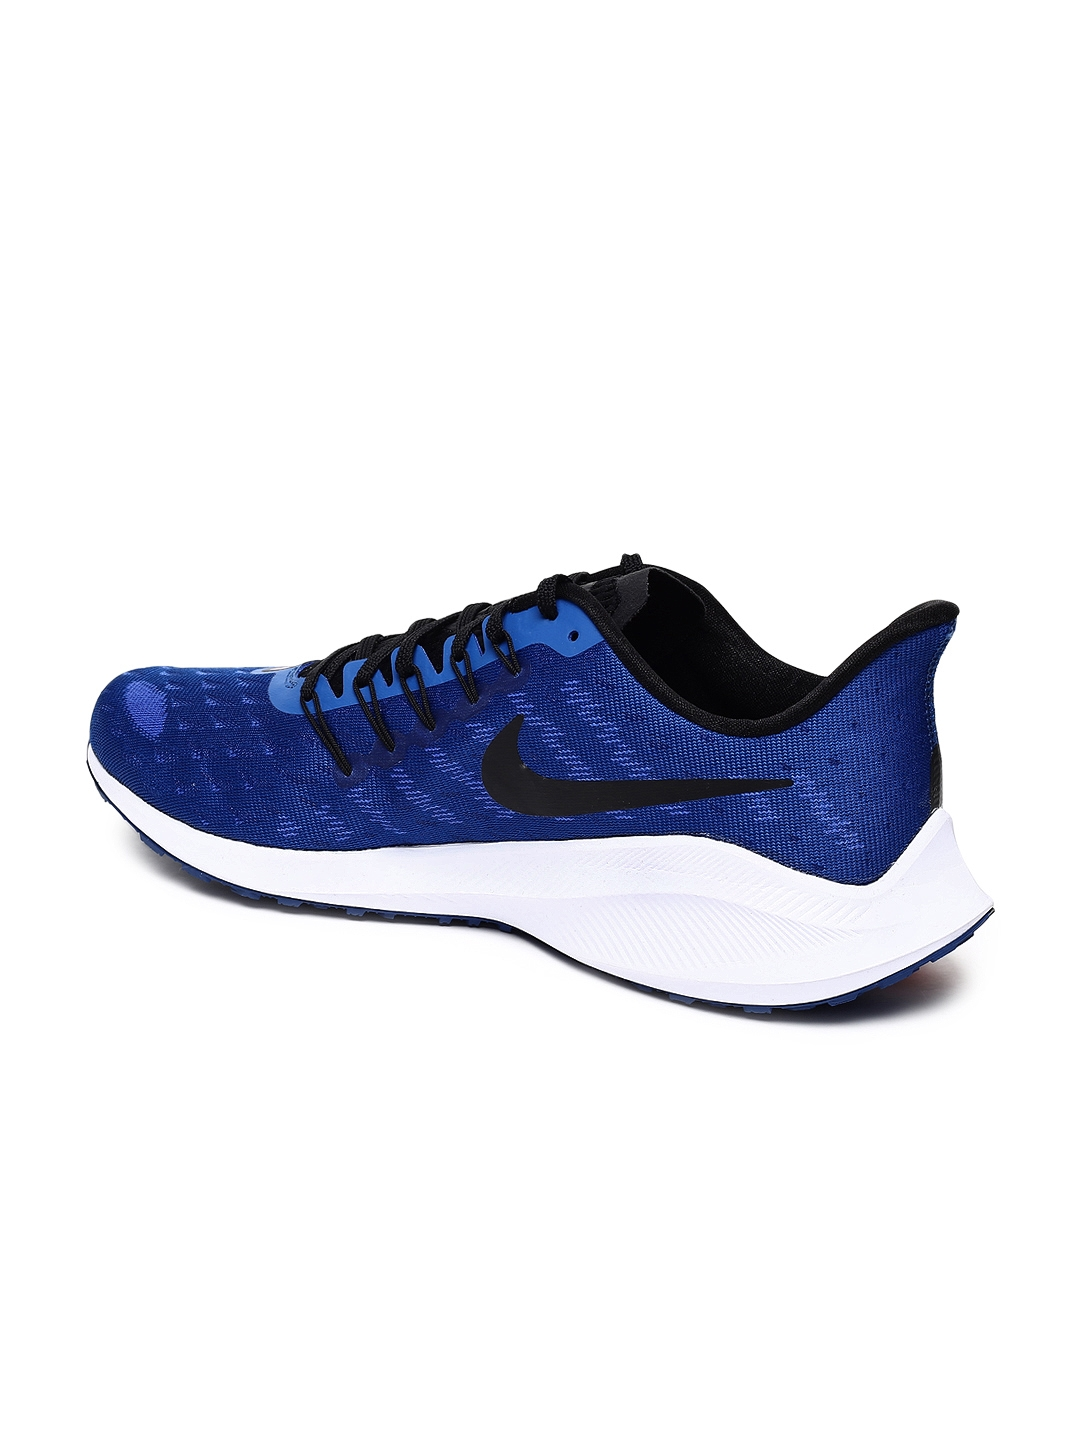 9b58096df7309 Buy Nike Men Blue Air Zoom Vomero 14 Running Shoes - Sports Shoes ...